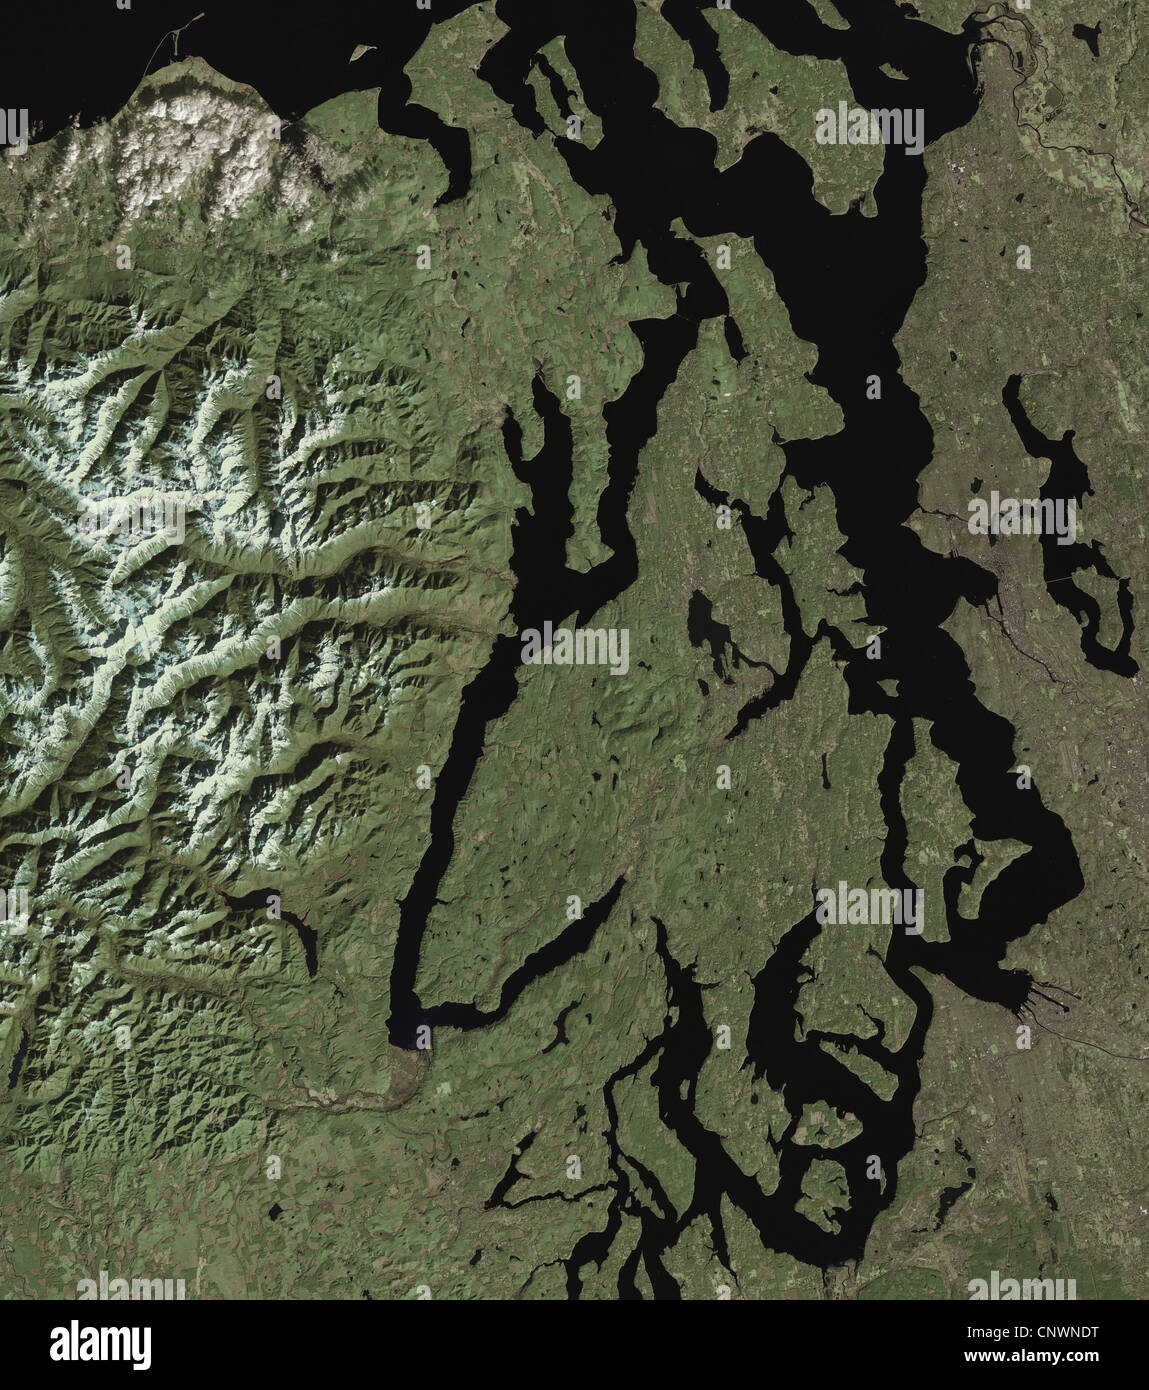 satellite image of Puget Sound Seattle Olympic Mountains